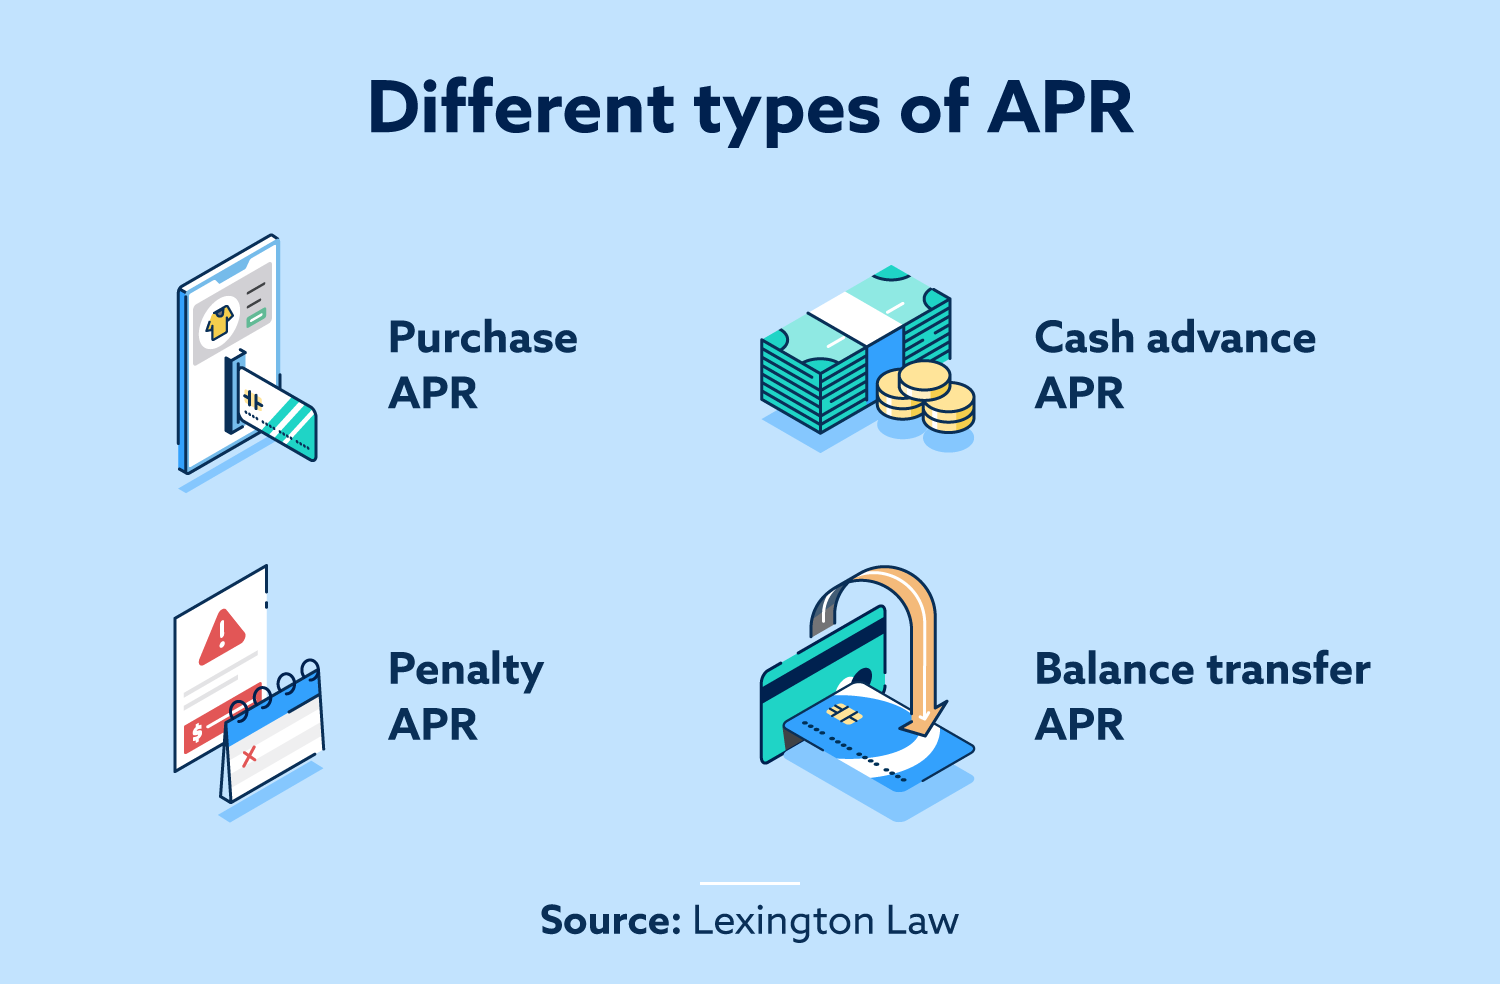 Different types of APR. Purchase APR, cash advance APR, penalty APR and balance transfer APR.